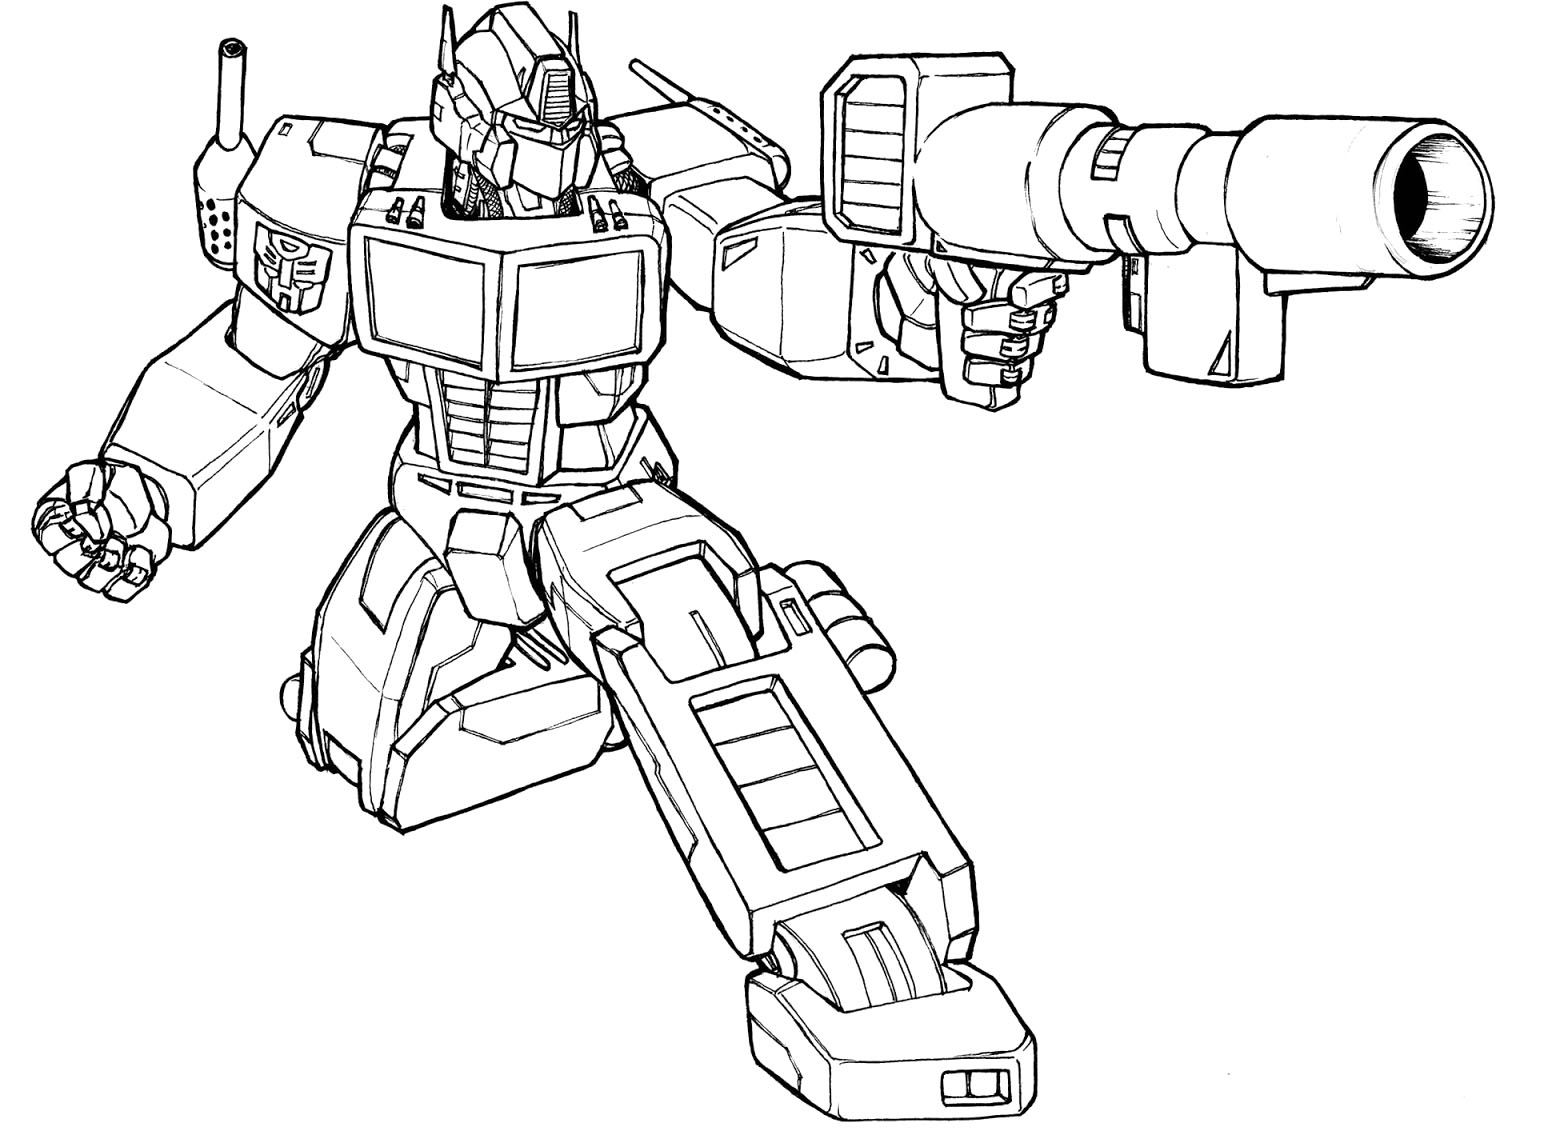 Coloring Pages : Transformers Coloring Sheets Autobot Pagessformer - Transformers 4 Coloring Pages Free Printable